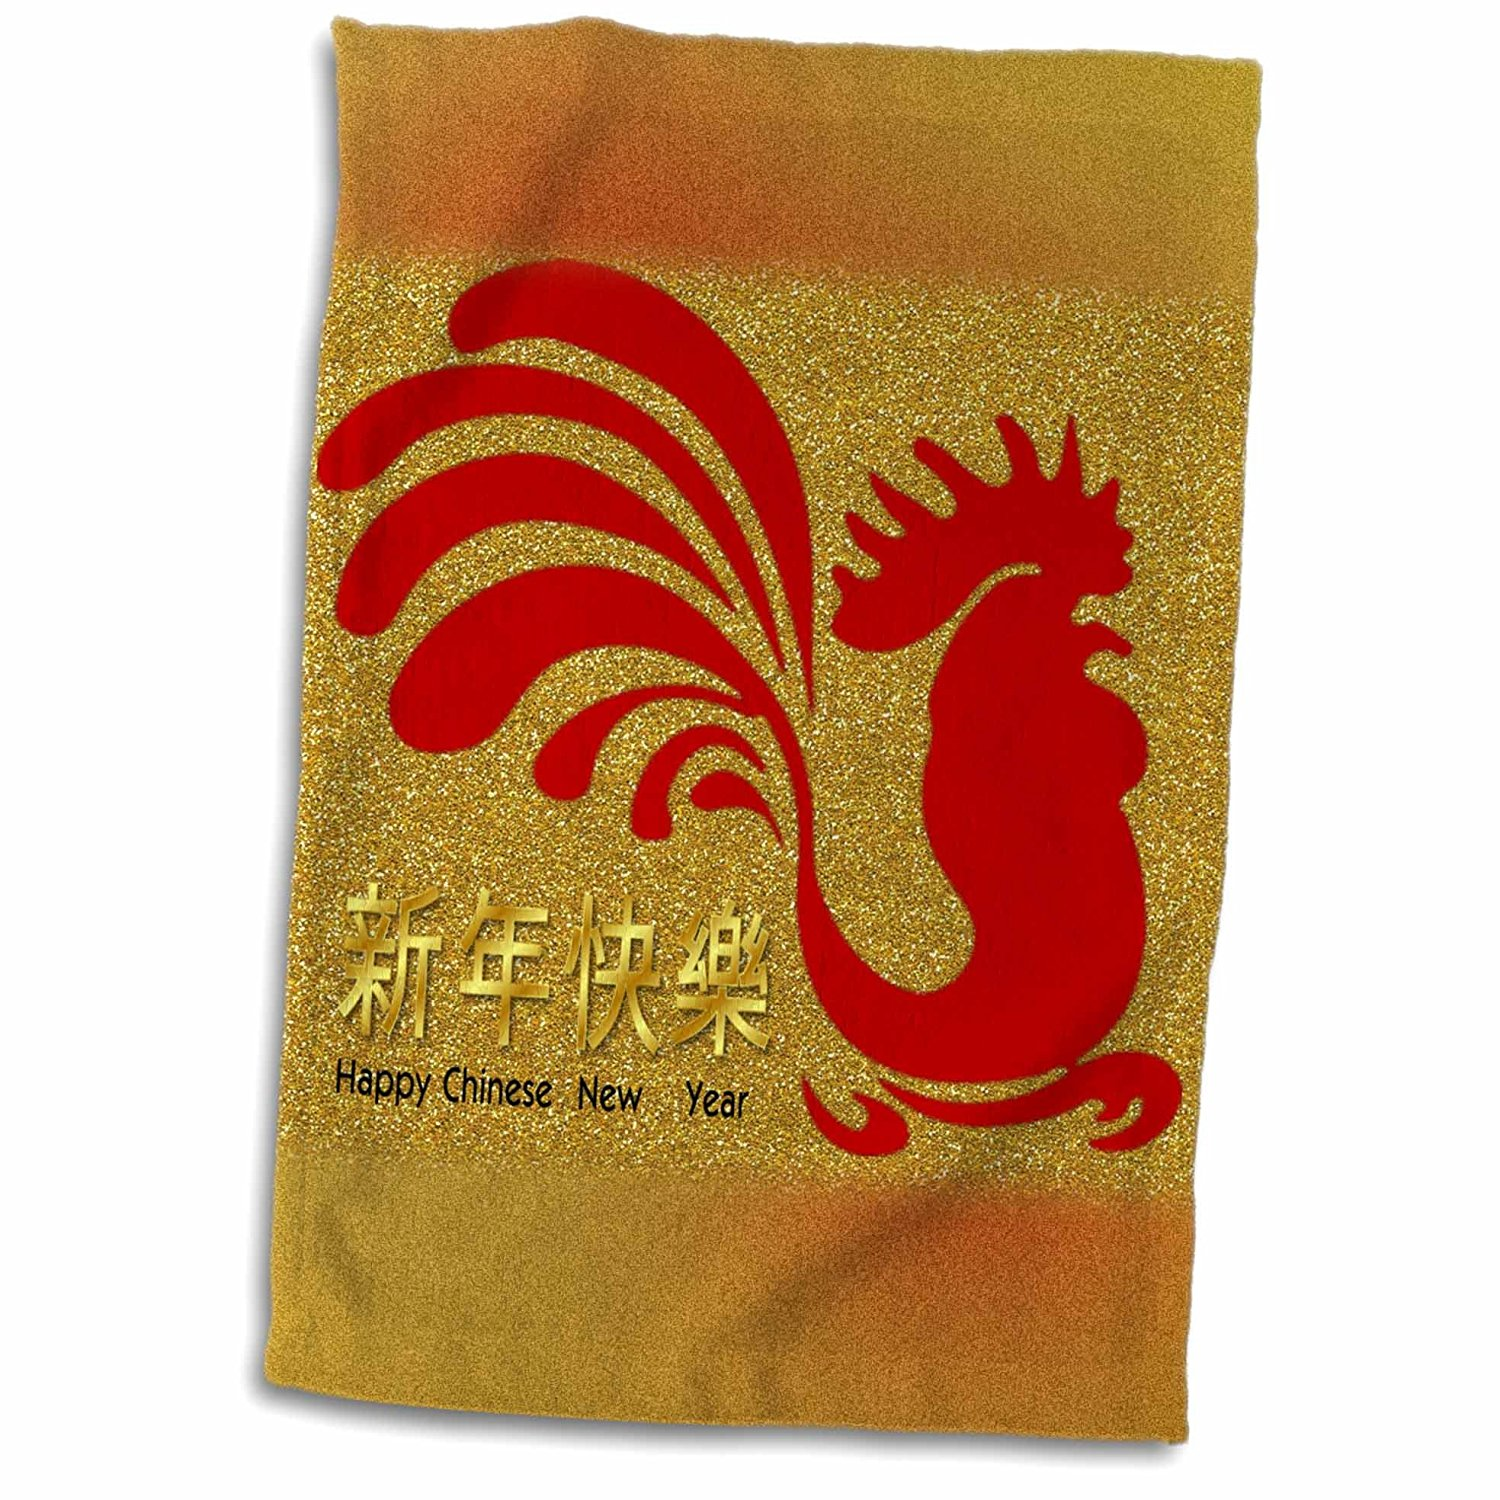 3dRose Florene Chinese New Year Designs - Image of Happy Chinese New Year With Red Rooster On Faux Gold Glitter - 12x18 Towel (twl_252072_1)